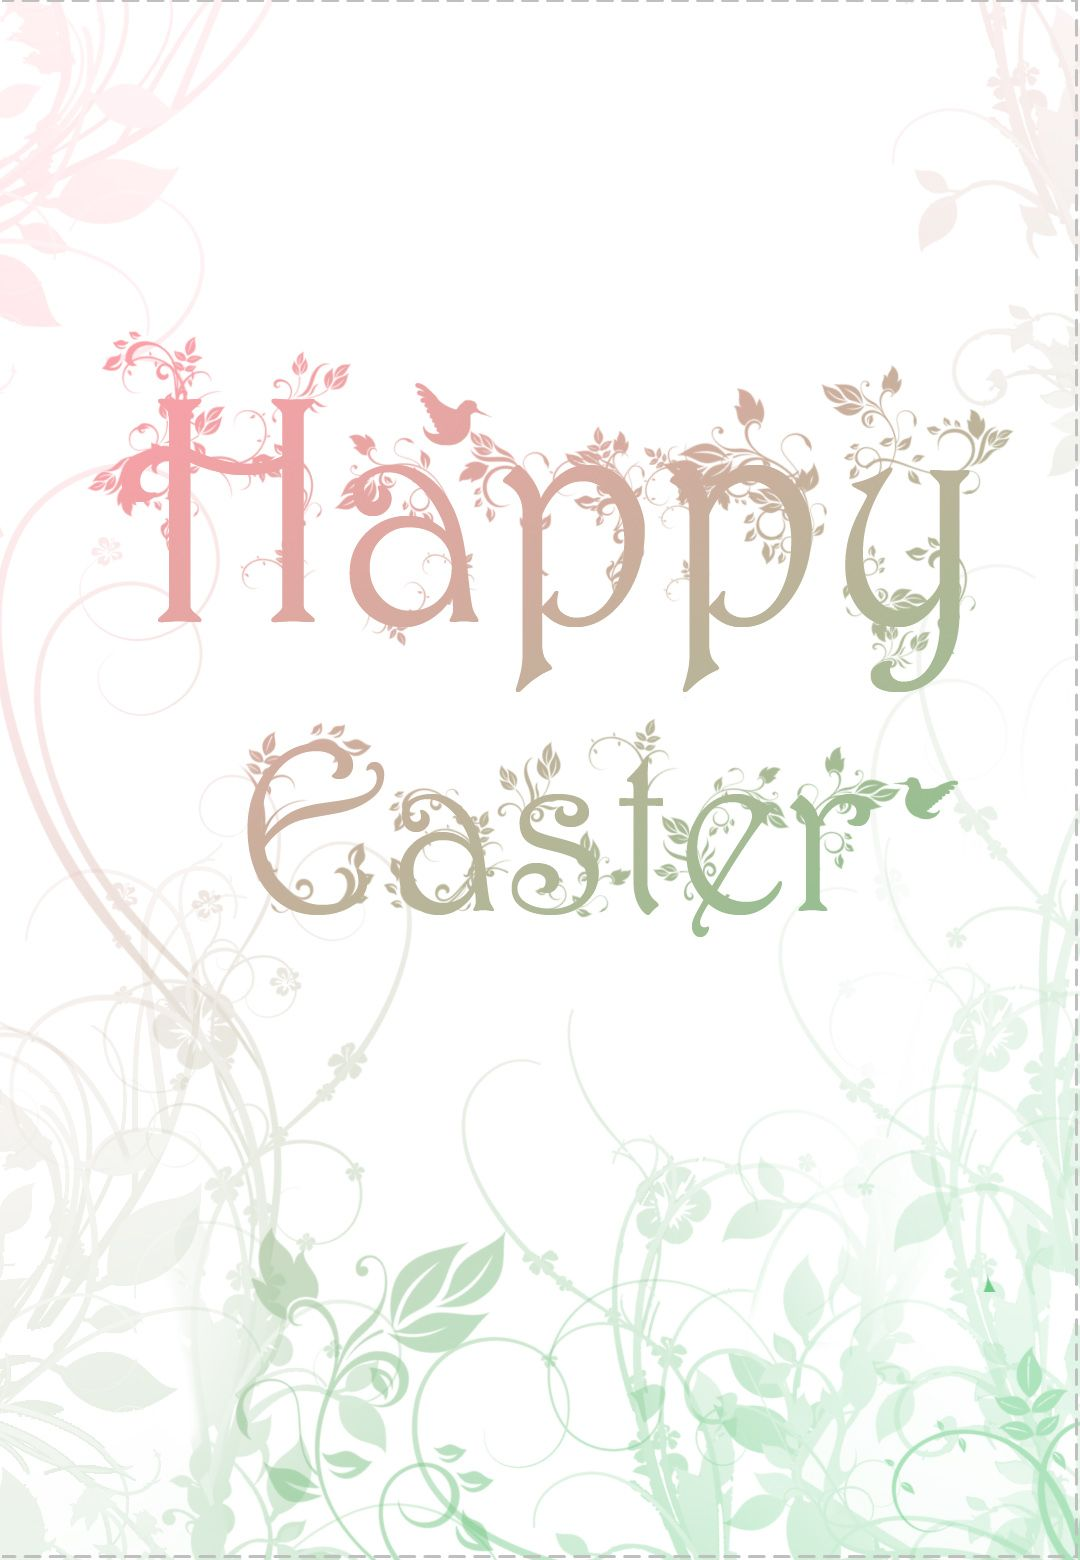 Free Printable Decorated Easter Card Greeting Card Easter Cards Easter Greeting Cards Easter Images